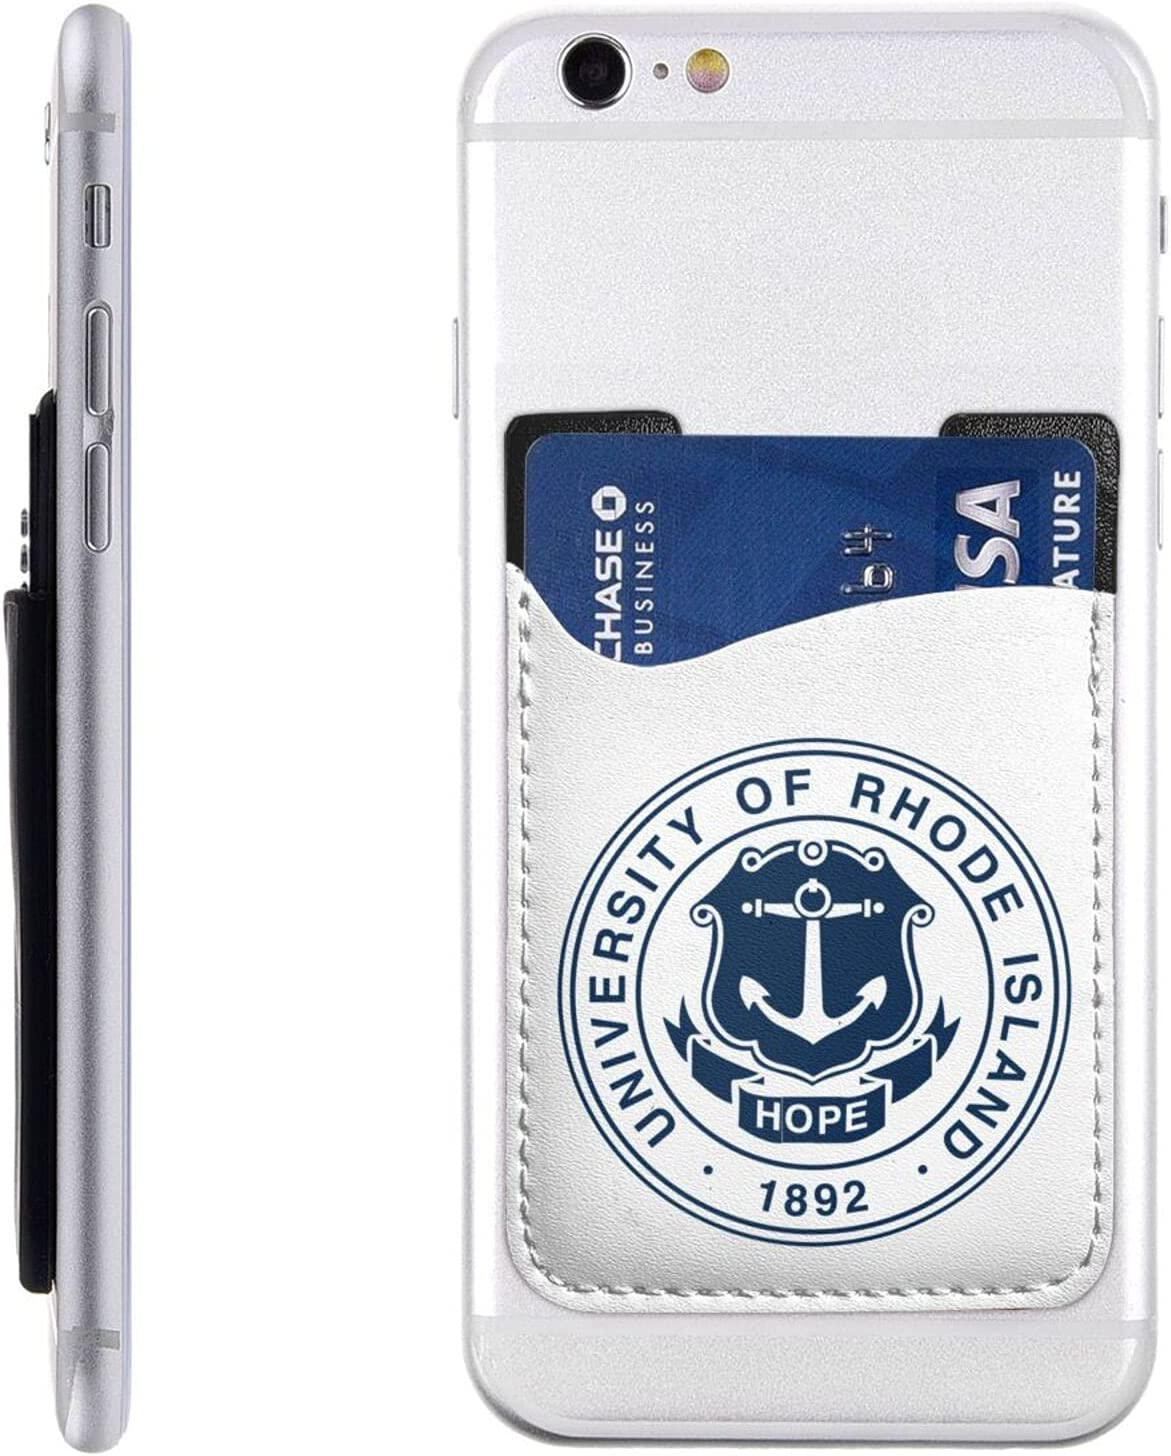 University of Rhode Island Cell Phone Stick-On Holder Id Card 5 ☆ popular Max 89% OFF Cr